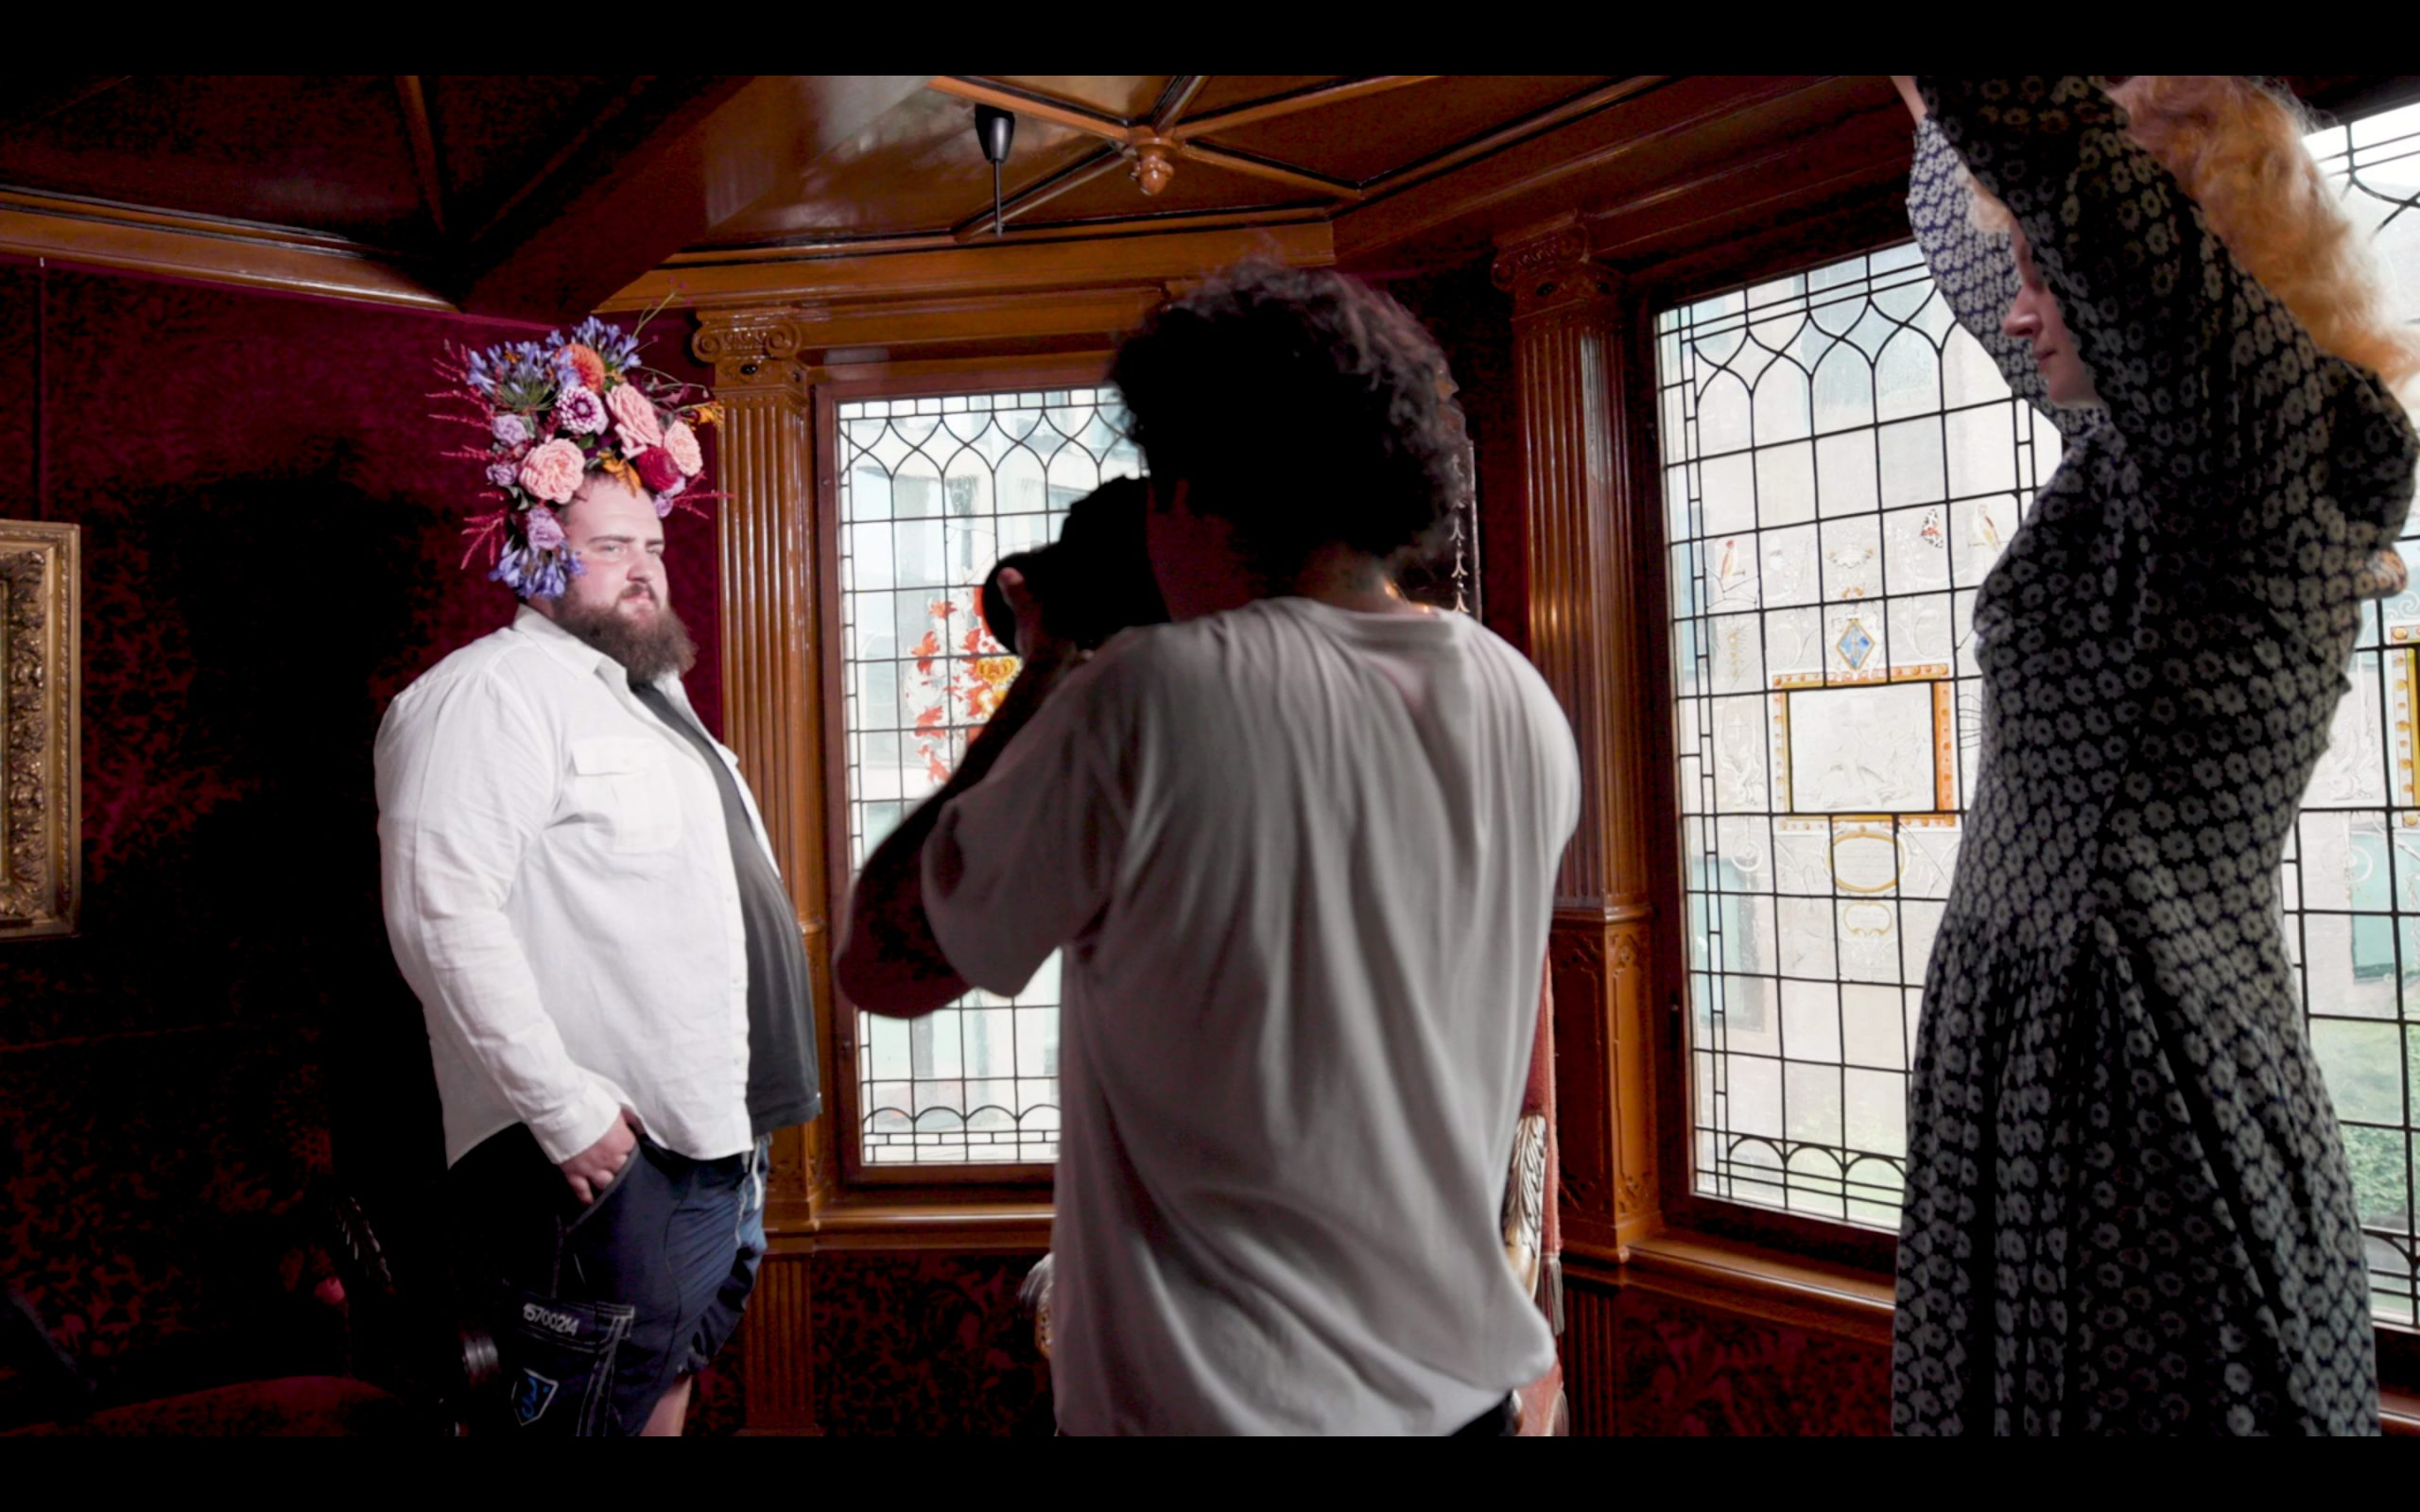 A behind the screens moment with the photographer Prins, Ryan and Noortje